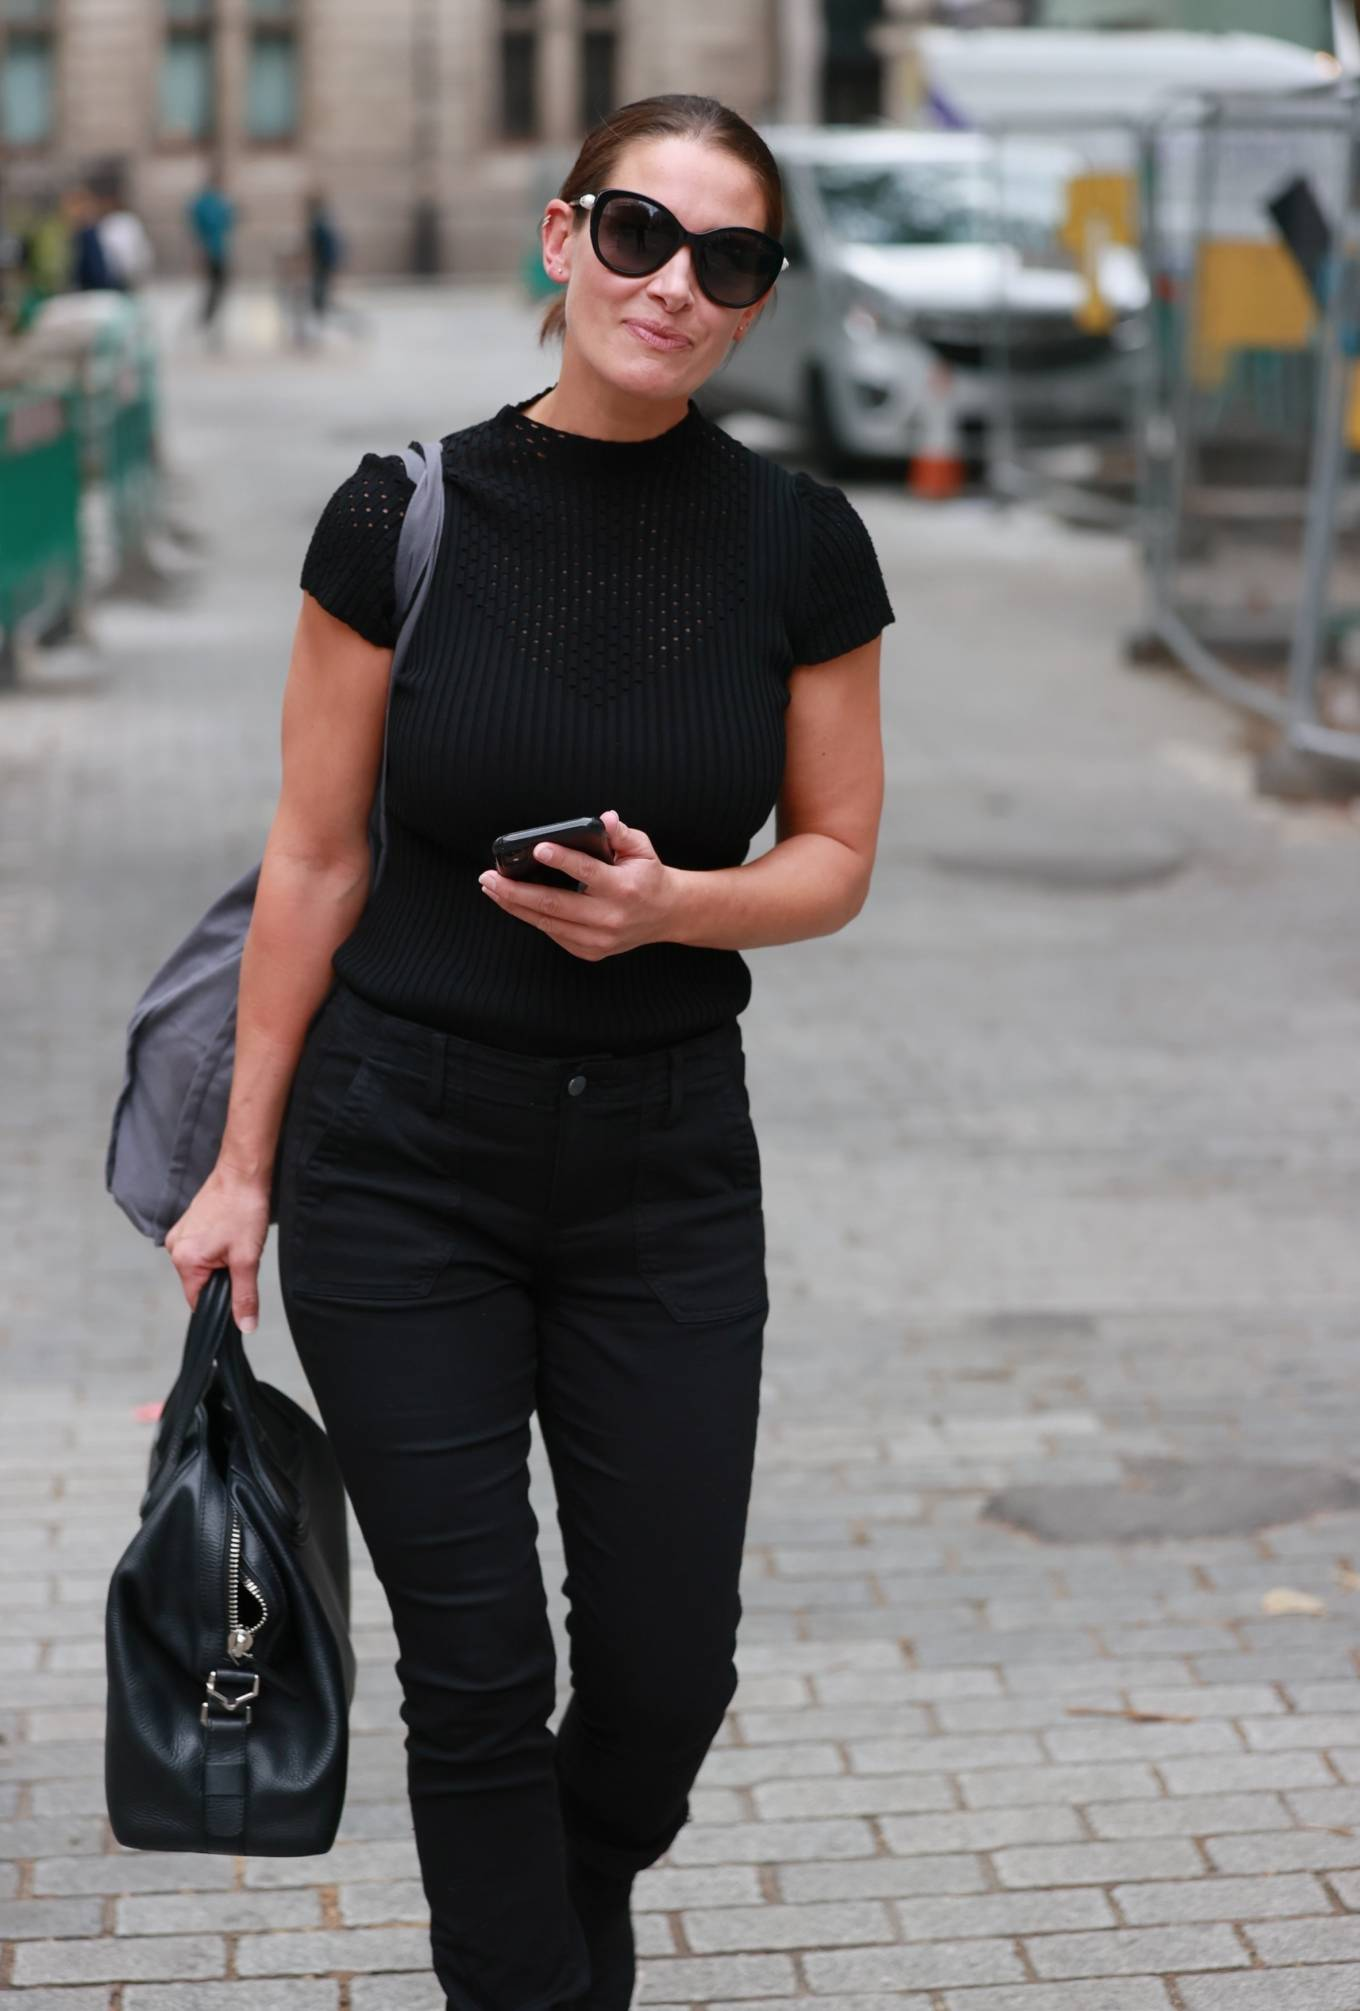 Kirsty Gallacher 2020 : Kirsty Gallacher in skin tight jeans and boots at Global Radio in London-13